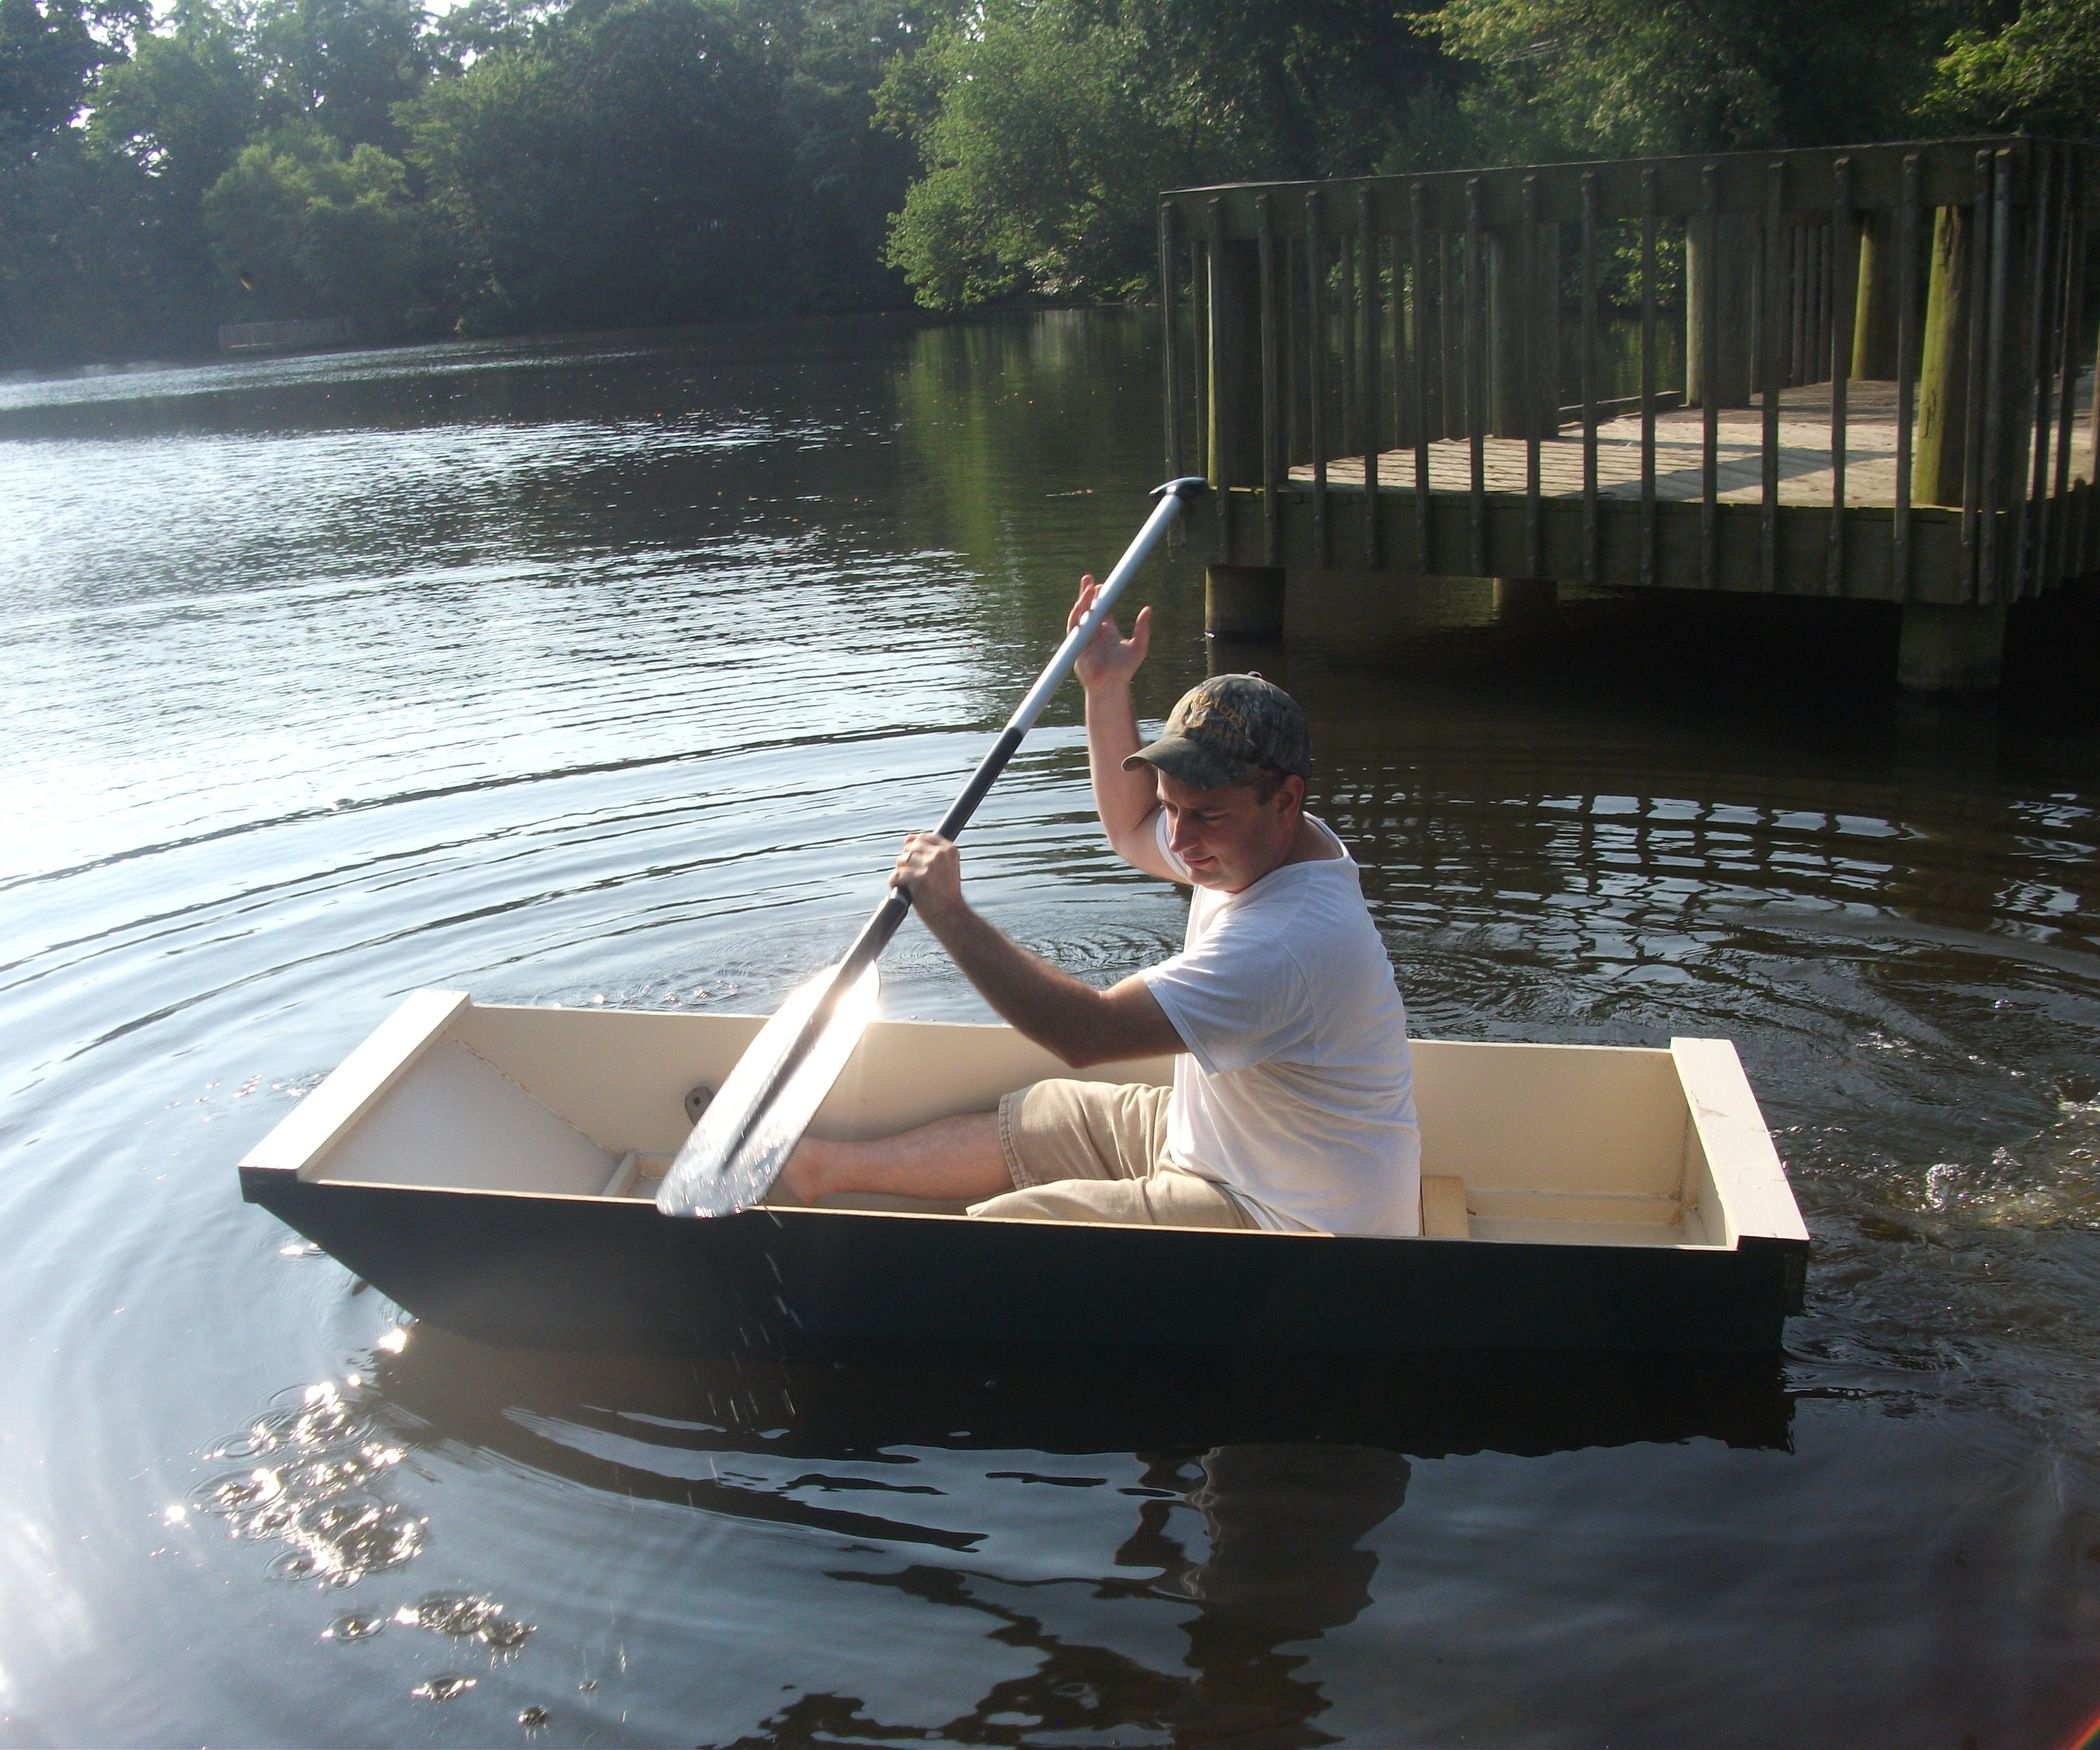 The Bo At Single Sheet Plywood Boat Build Your Own Boat Boat Plans Plywood Boat